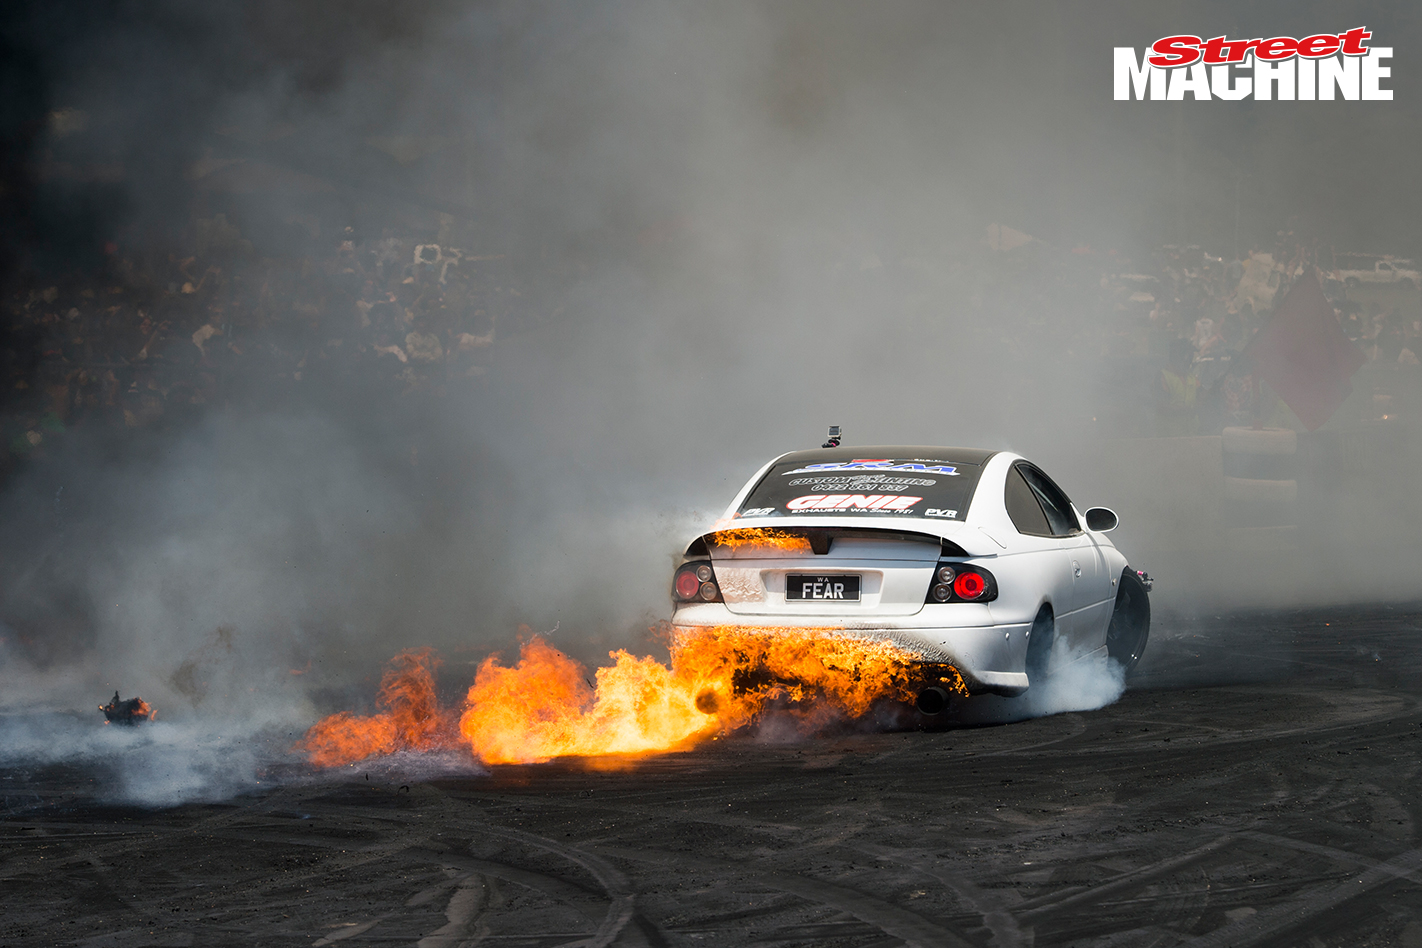 FEAR Burnout Fire Summernats